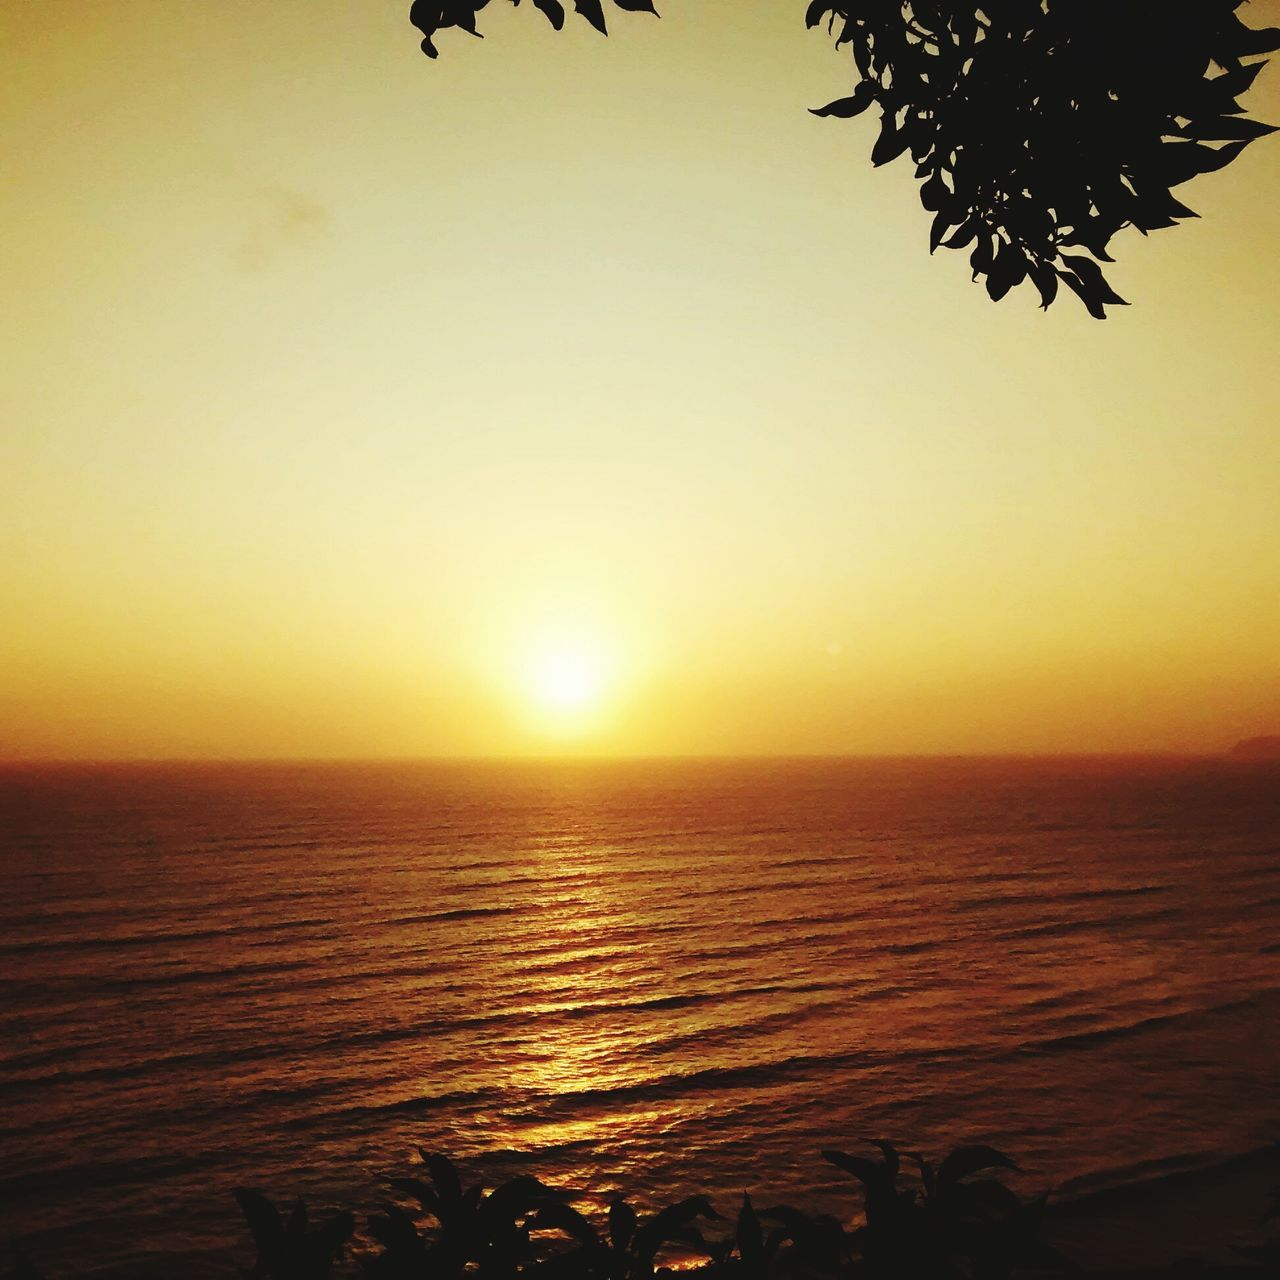 sunset, sea, beauty in nature, scenics, nature, tranquil scene, tranquility, sun, water, silhouette, horizon over water, idyllic, clear sky, outdoors, sky, beach, no people, vacations, tree, day